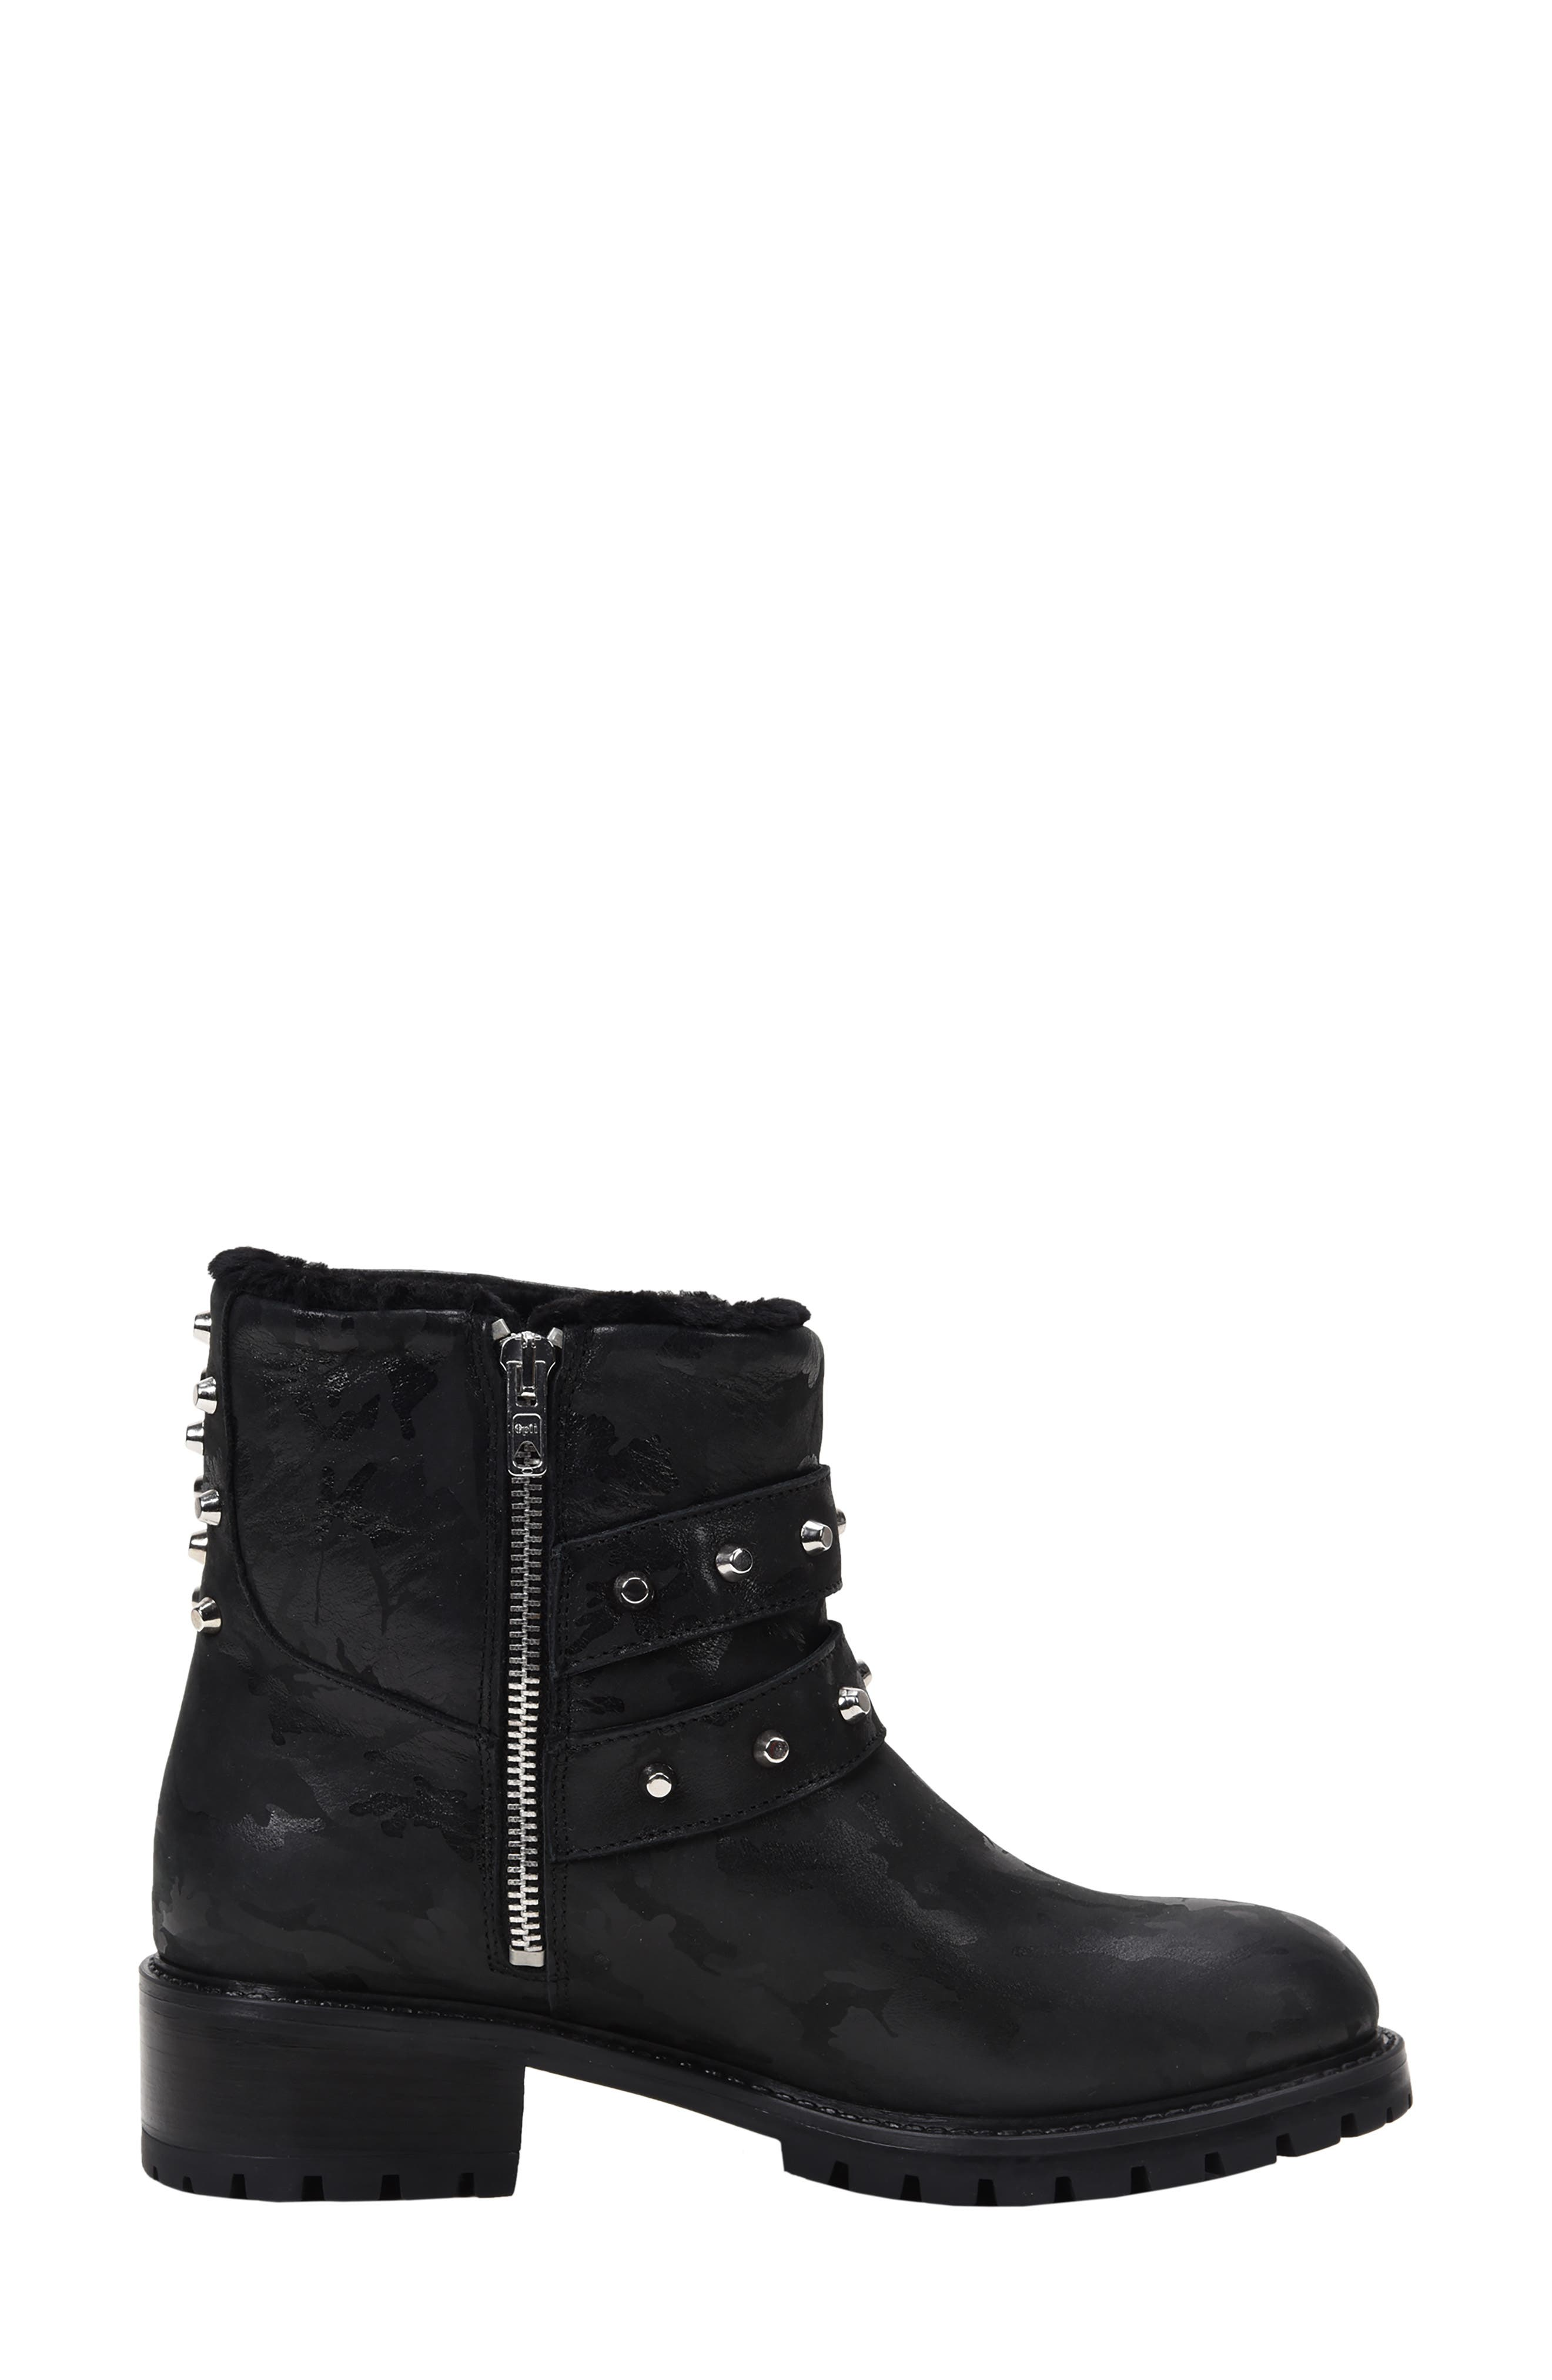 Stefana SP Genuine Shearling Lined Waterproof Bootie,                             Alternate thumbnail 7, color,                             BLACK CAMO LEATHER